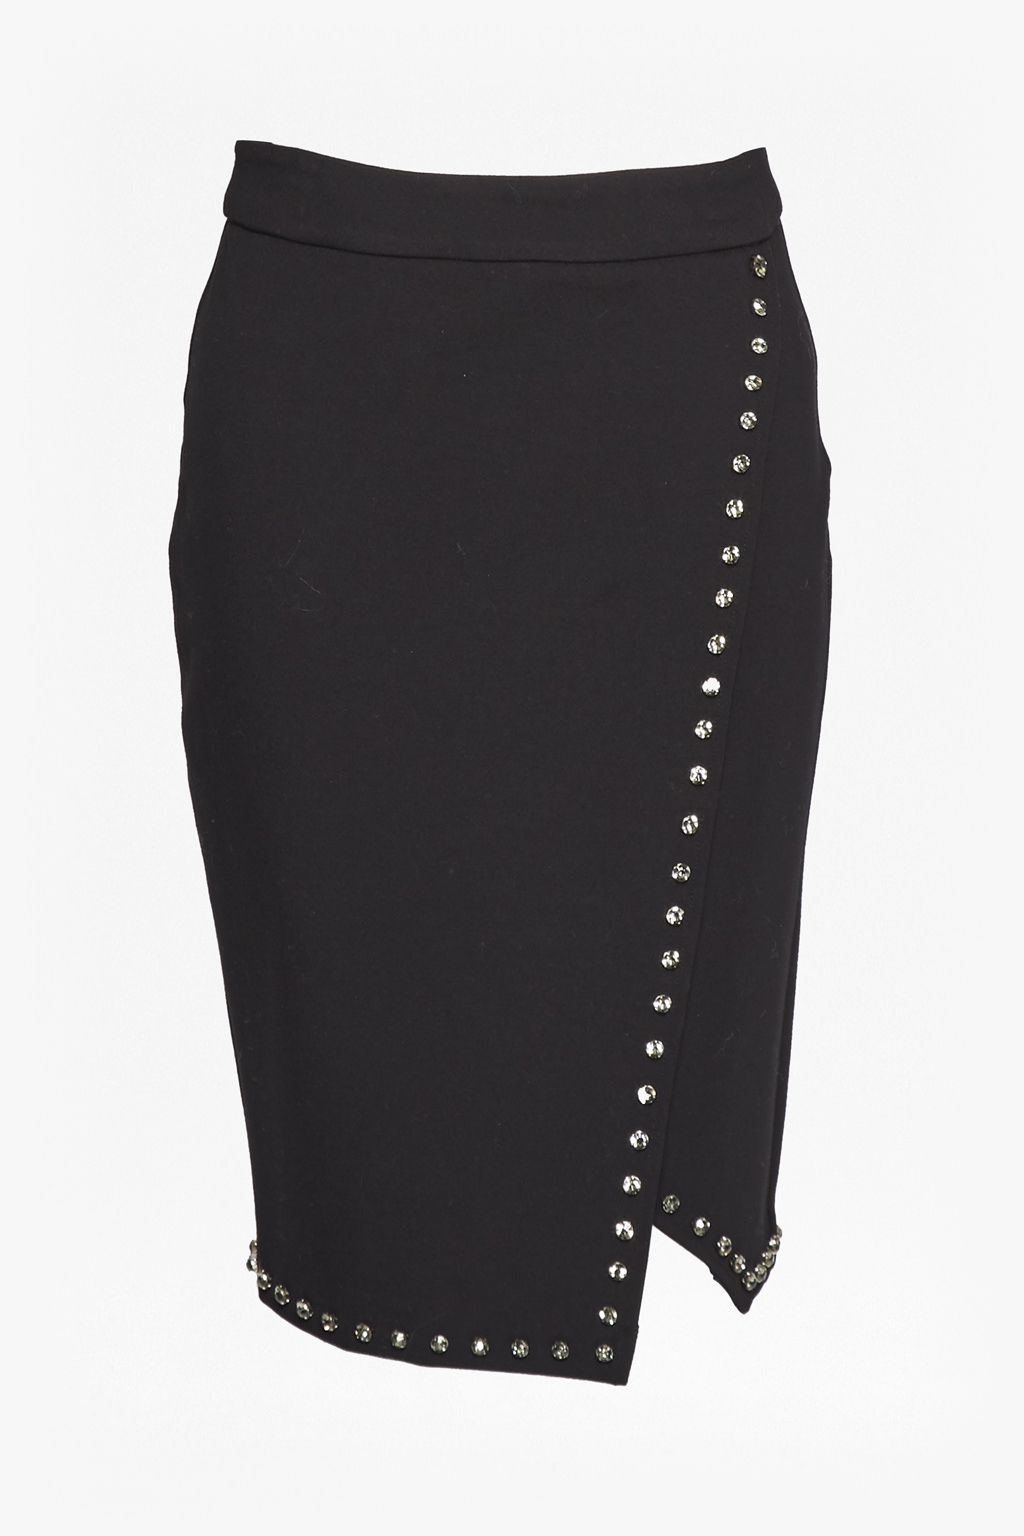 French Connection Lula Rhinestone Wrapover Pencil Skirt Visa Payment Low Shipping Fee Cheap Online Cheap Sale Newest Visit New Cheap Online PPOlN0dzf